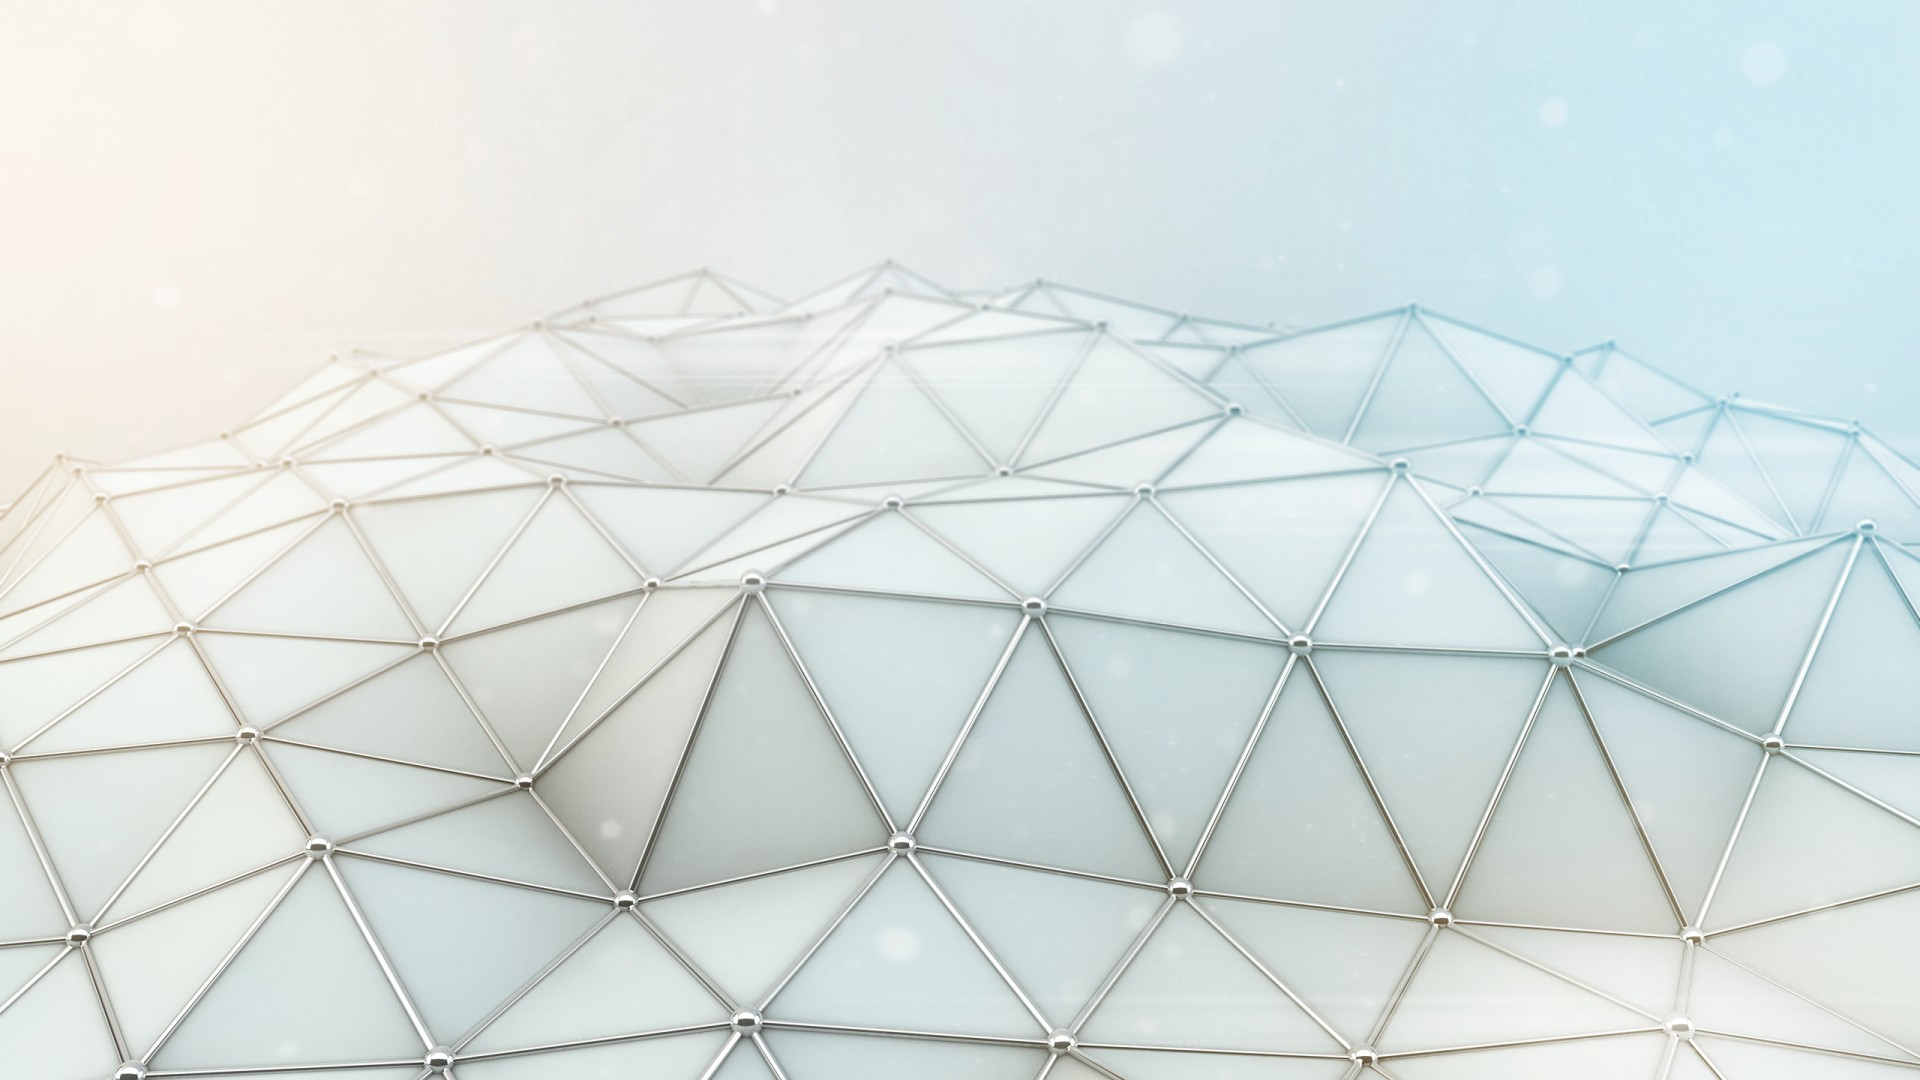 Abstract White Patterns Polygon Wallpaper – MixHD wallpapers